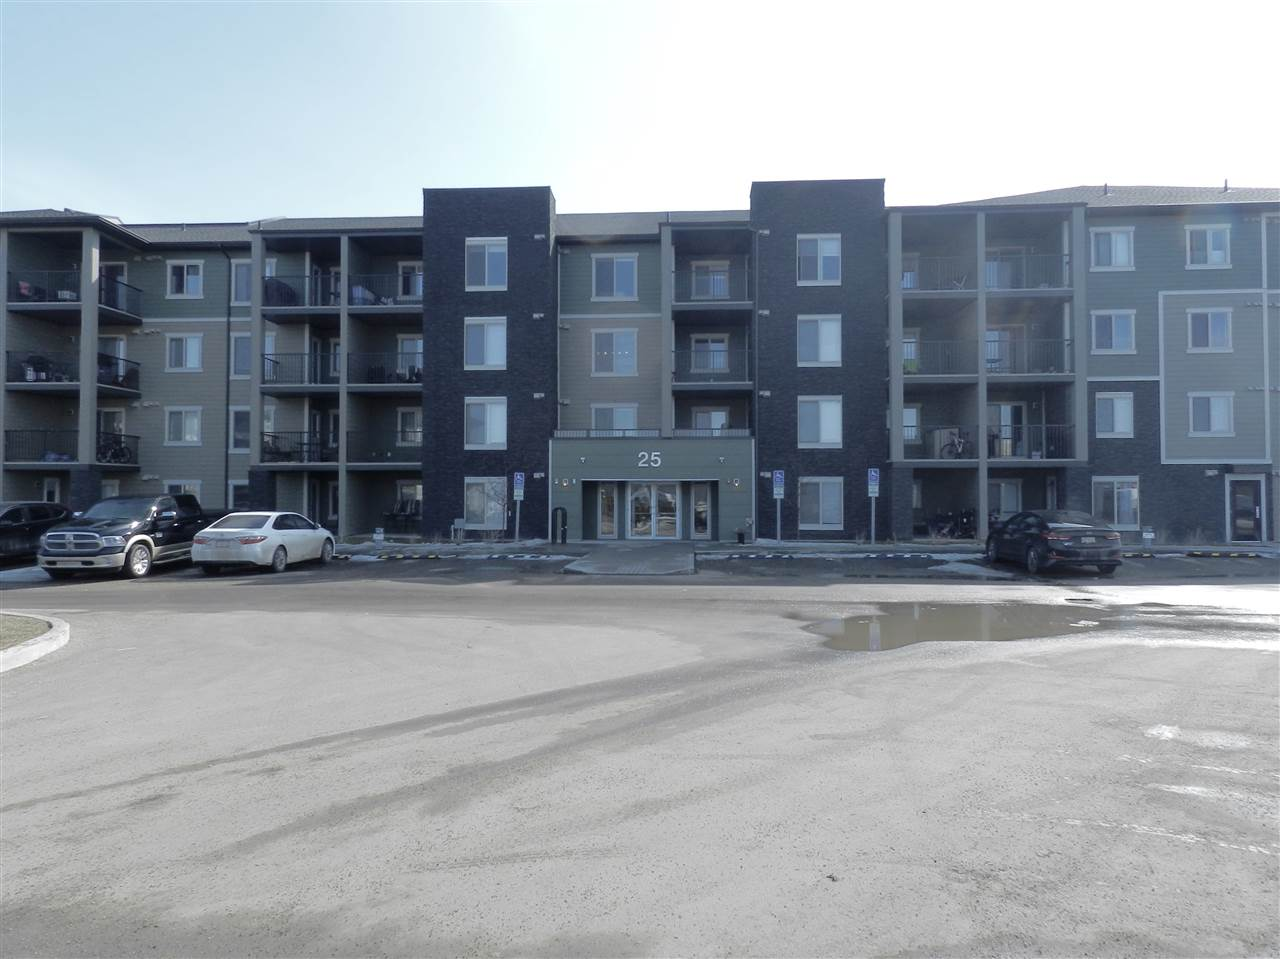 MLS® listing #E4148416 for sale located at #308 25 ELEMENT Drive N